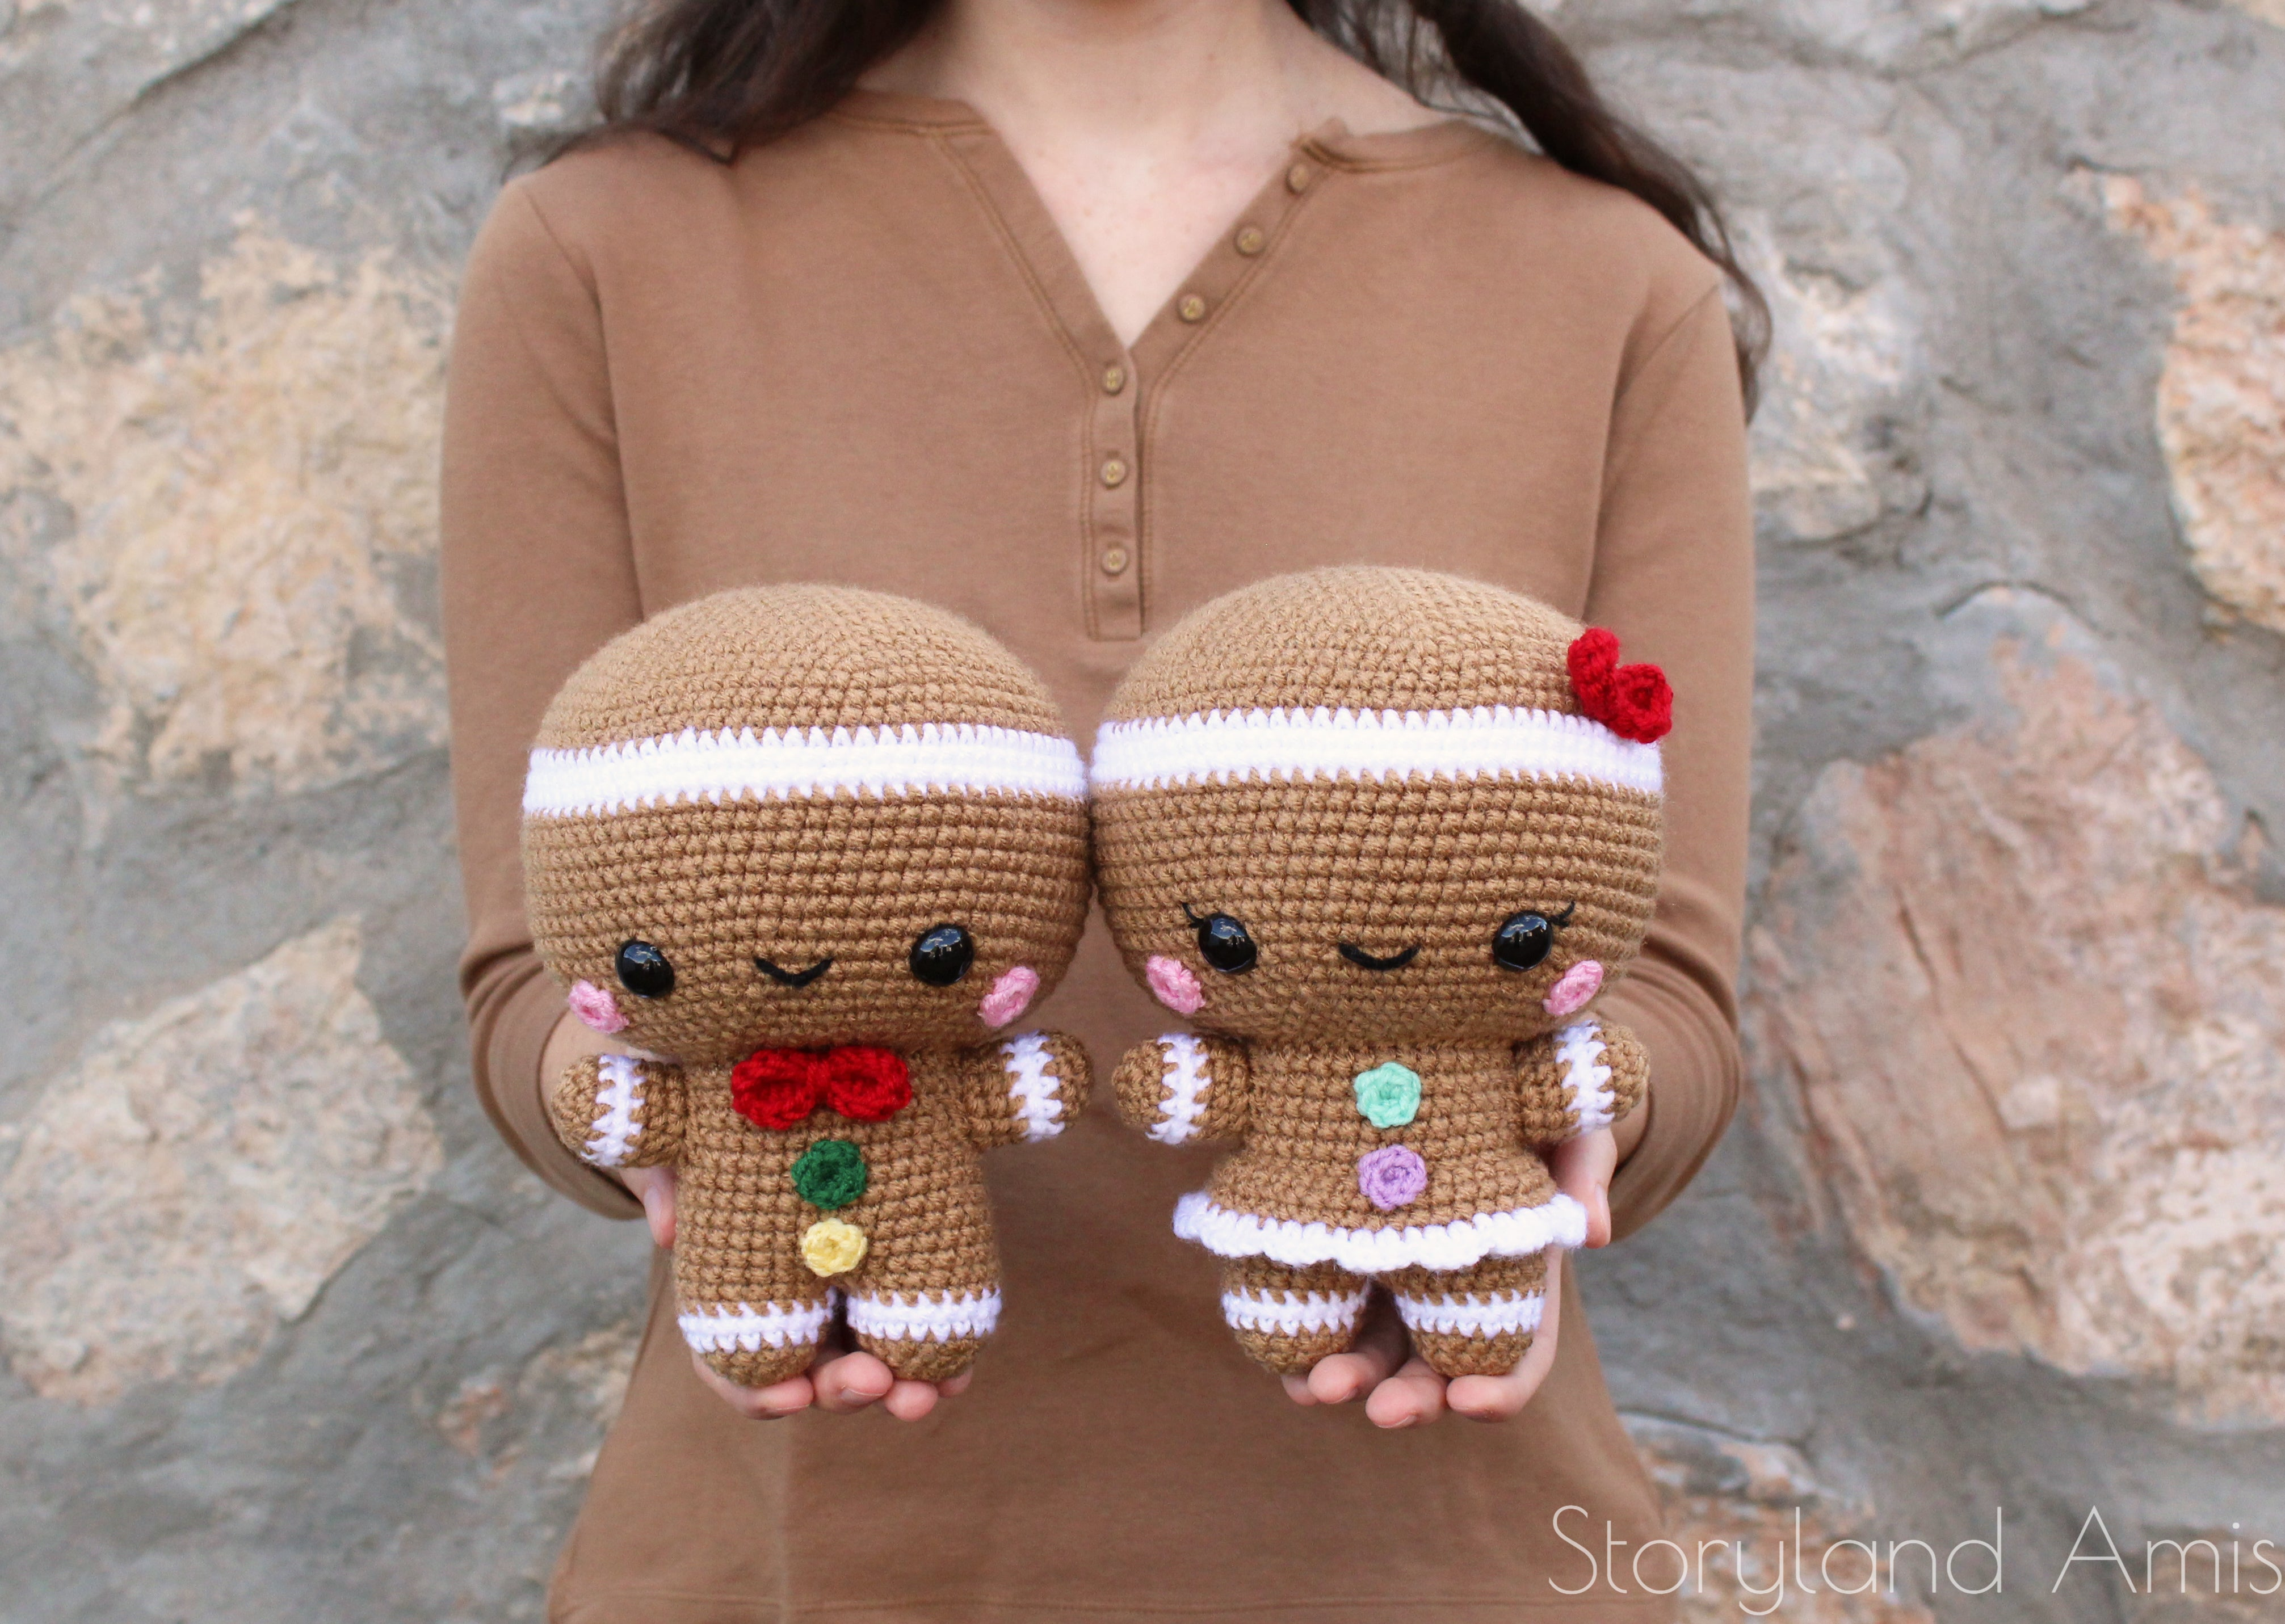 Storyland Amis-Sugar and Spice the Gingerbread Twins Pattern